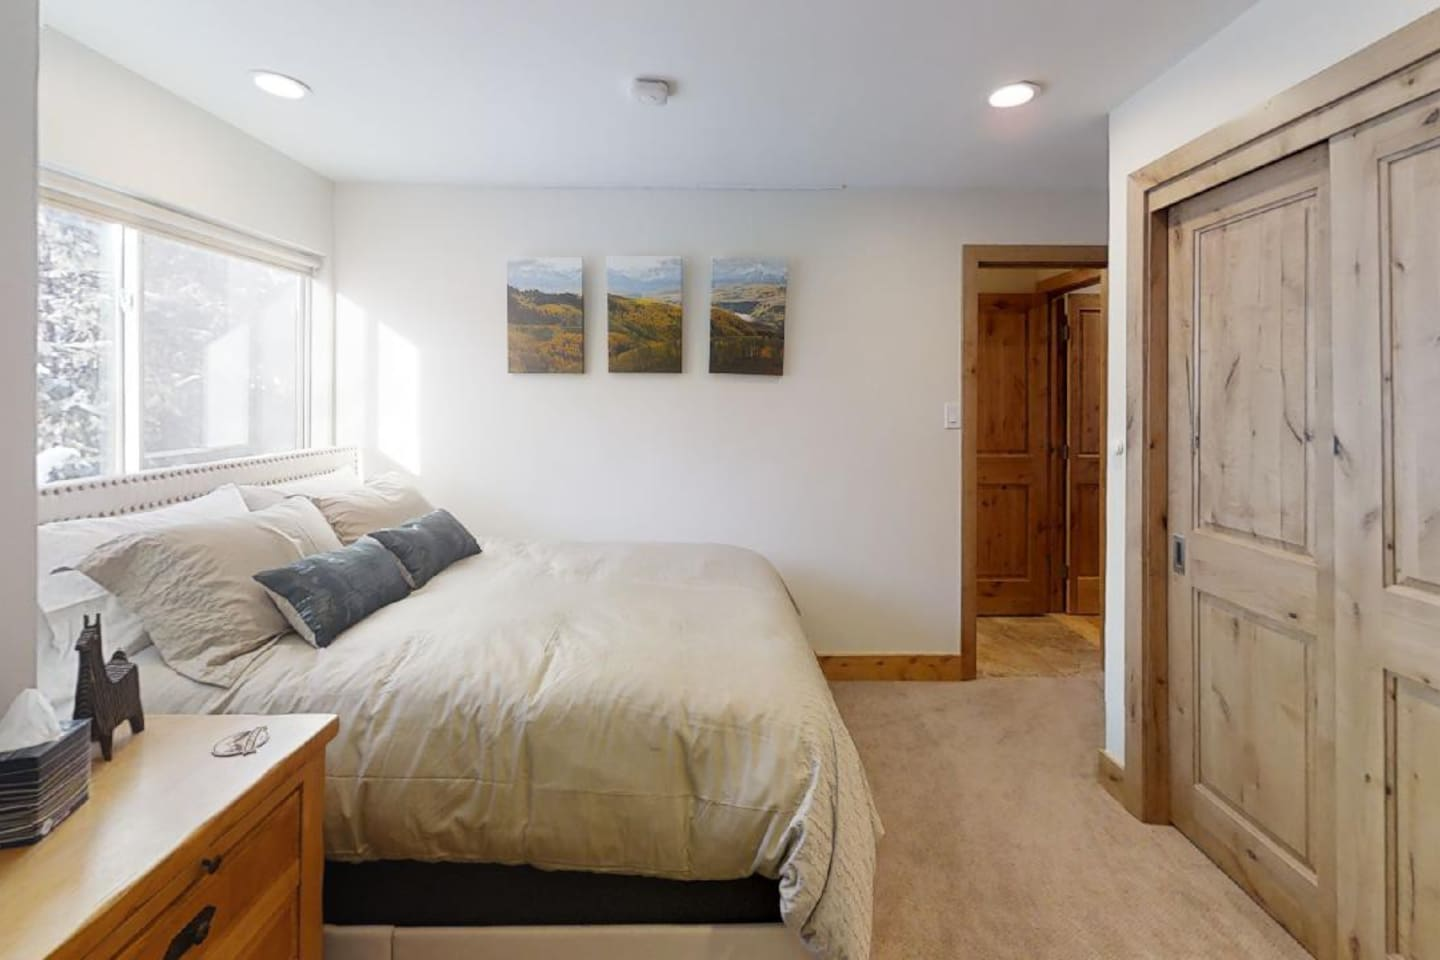 VAIL HAUS Studio Features a Queen Size Bed, Private Bathroom w/ Tub and a Spacious Closet (Includes Refrigerator, Freezer and Microwave). Also Includes Amazon Echo for Playing Music